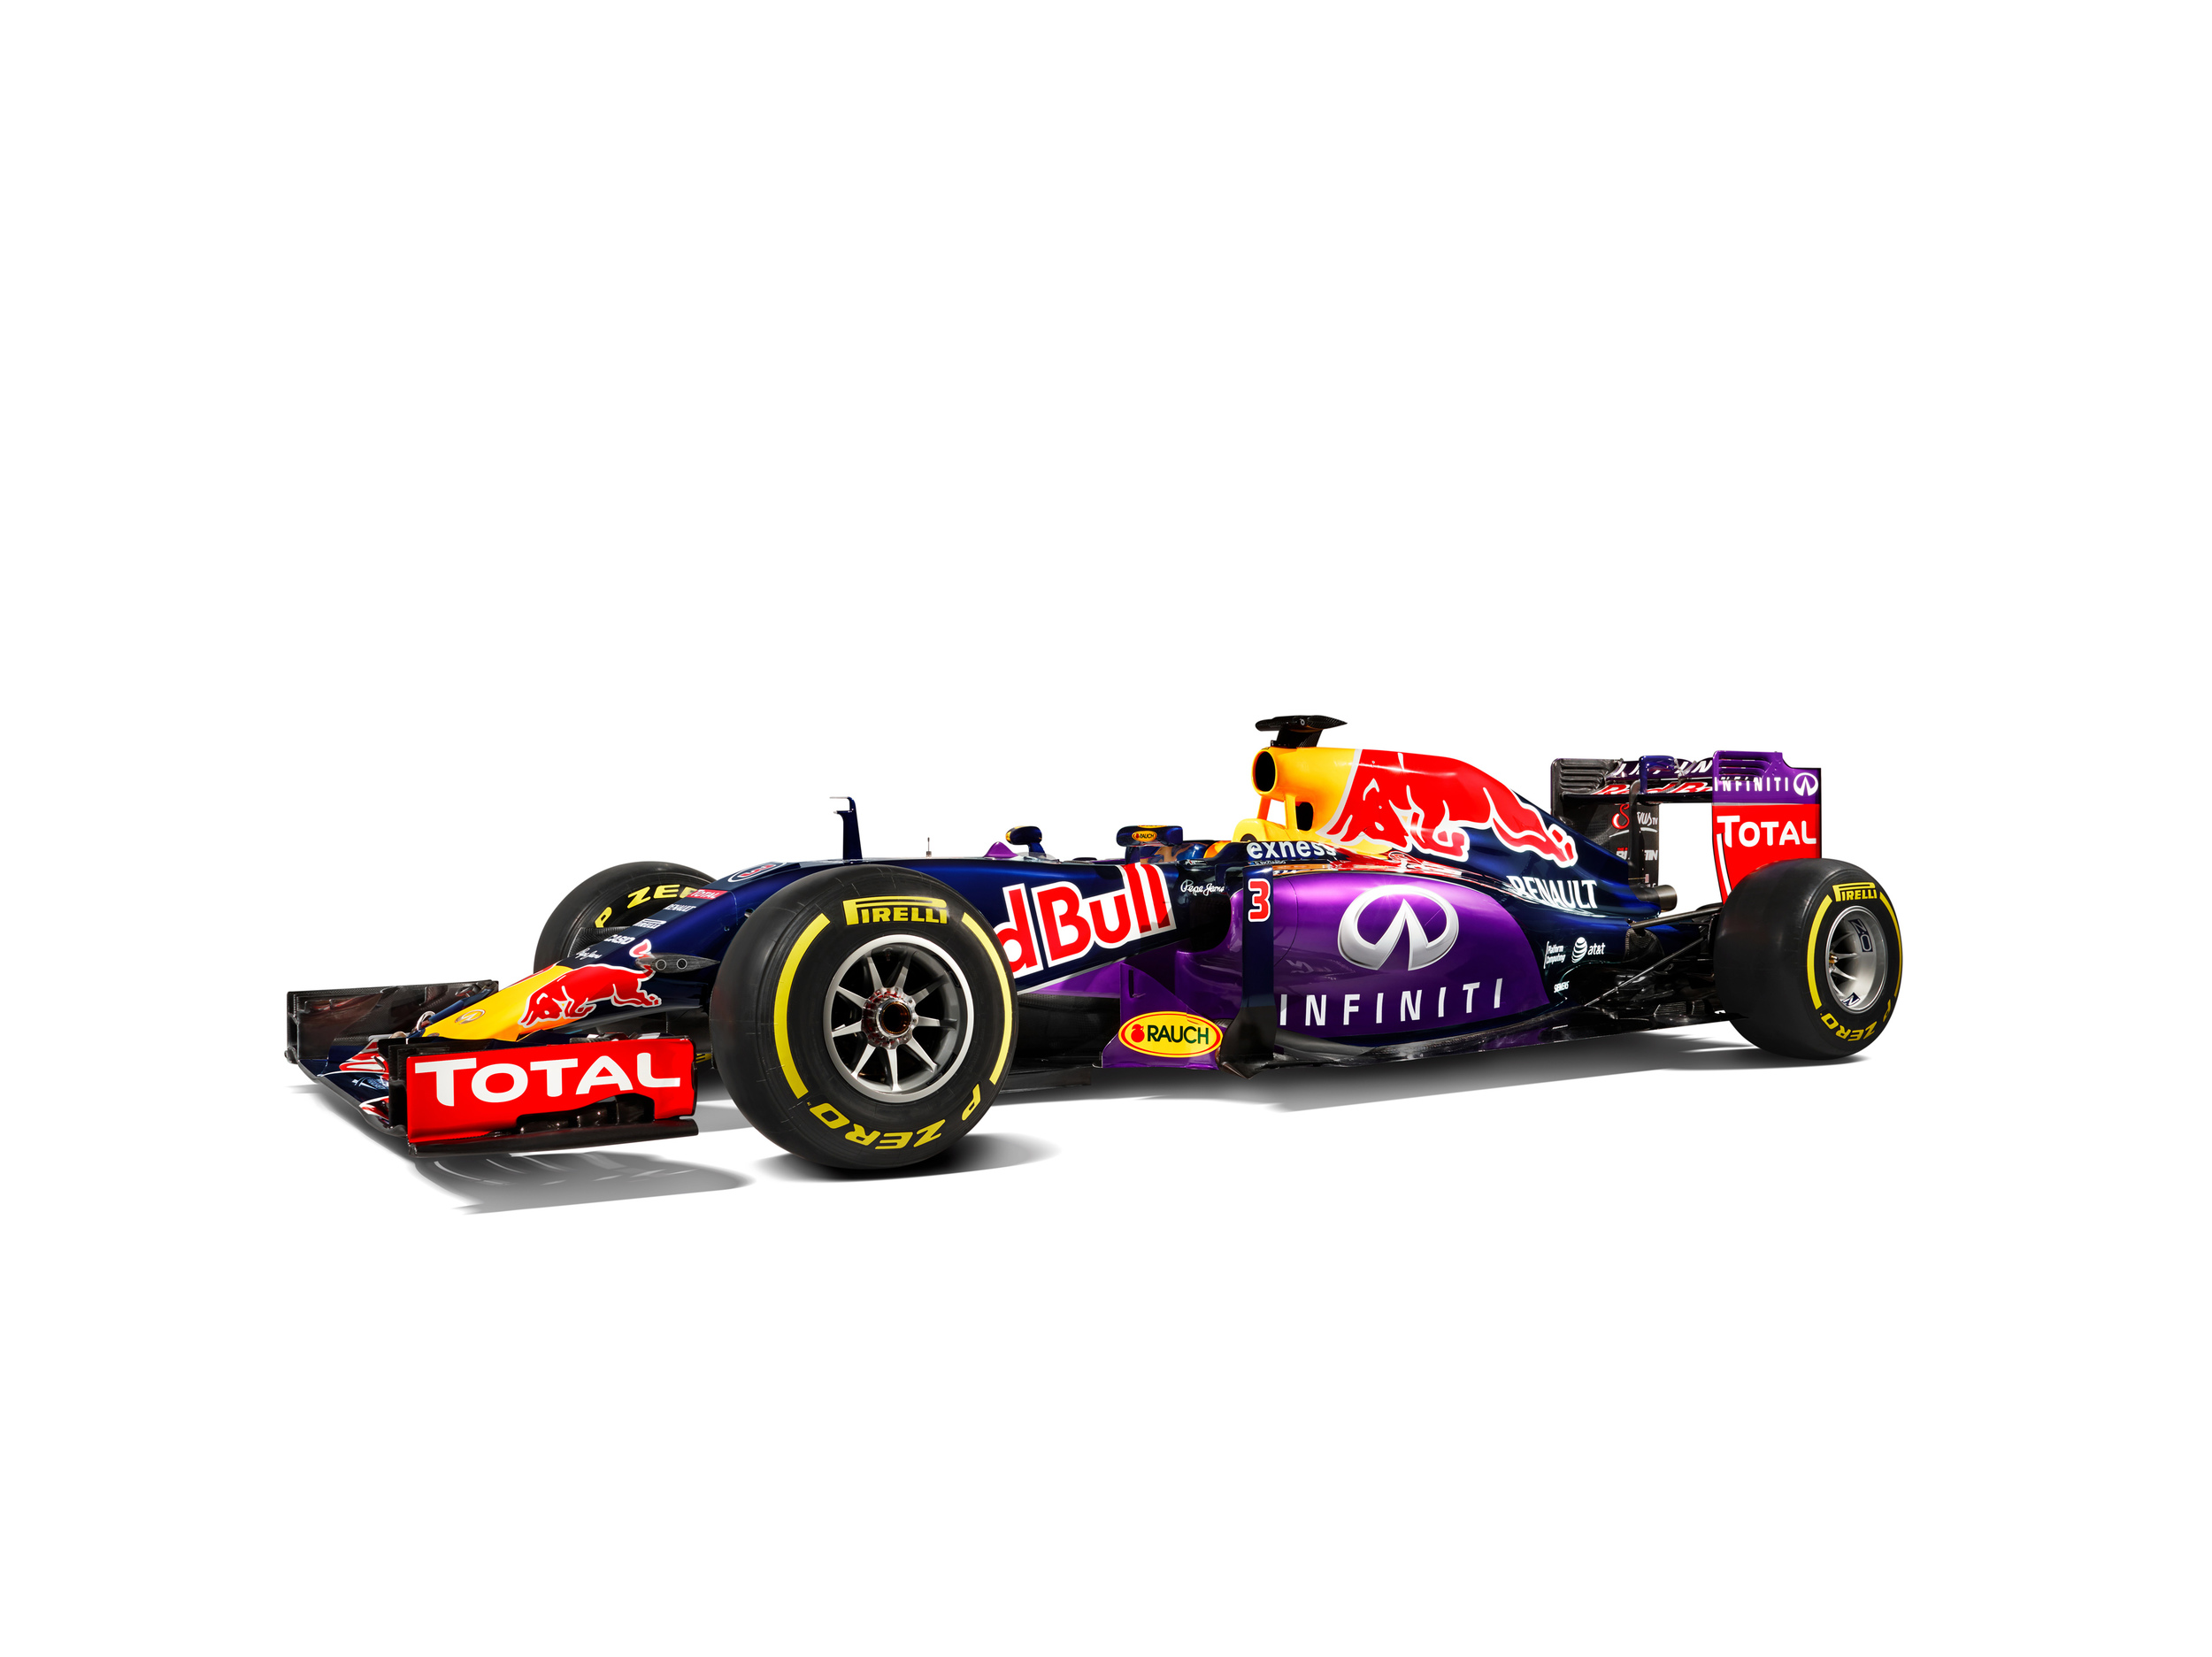 Red Bull Racing And Infiniti Will No Longer Be Partners 5